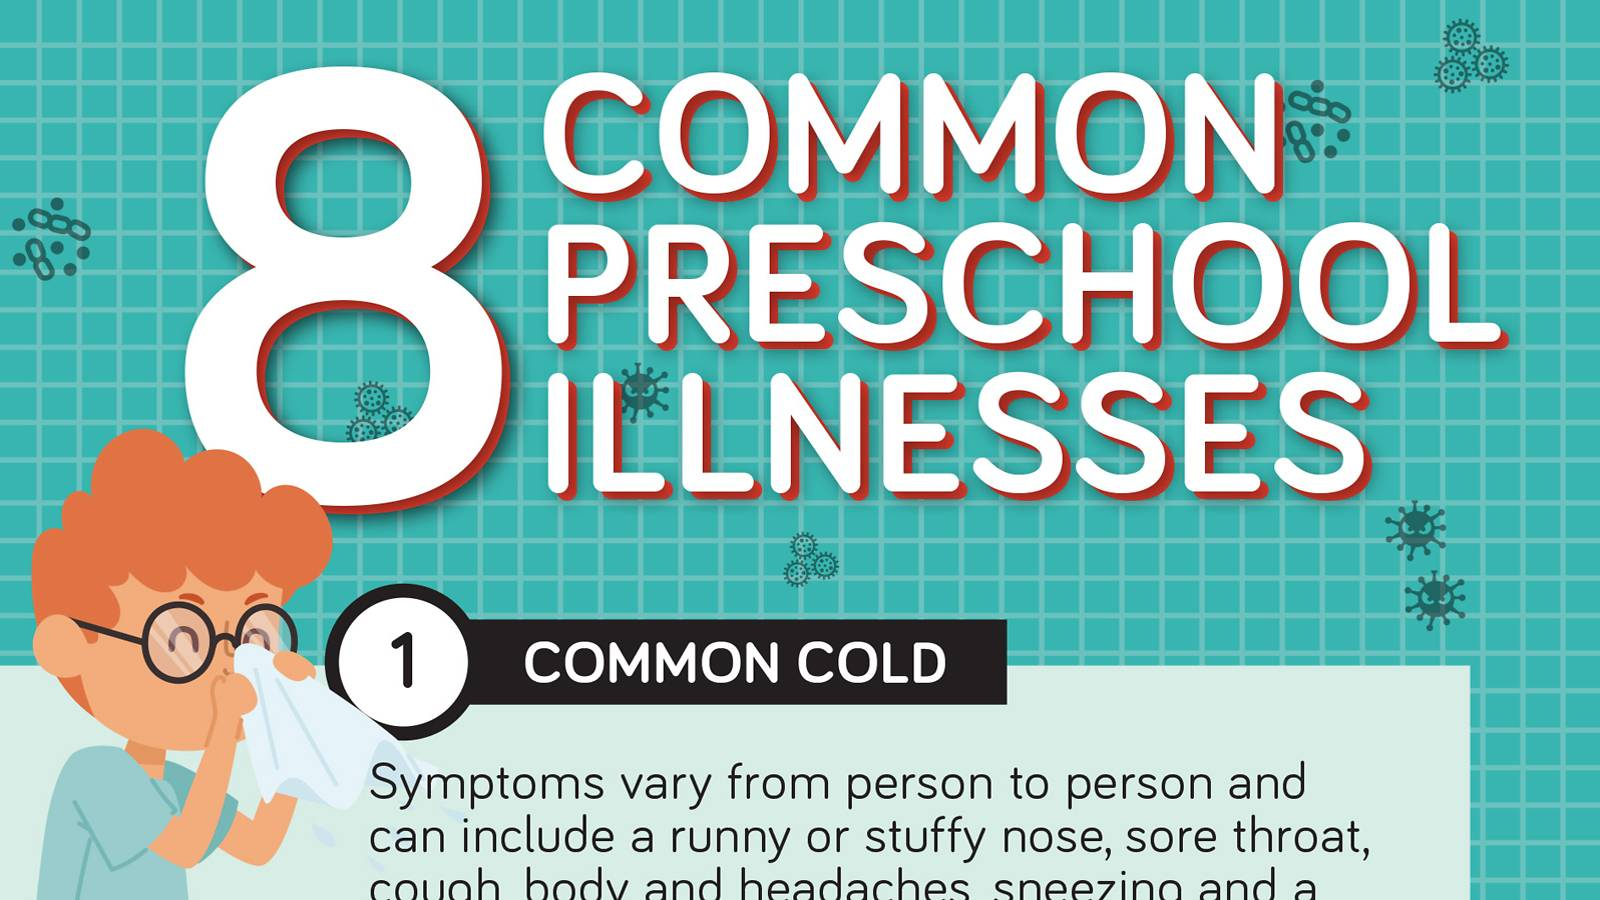 Tots-8-contagious-illnesses-junior-may-catch-in-preschool-[Infographic]-1